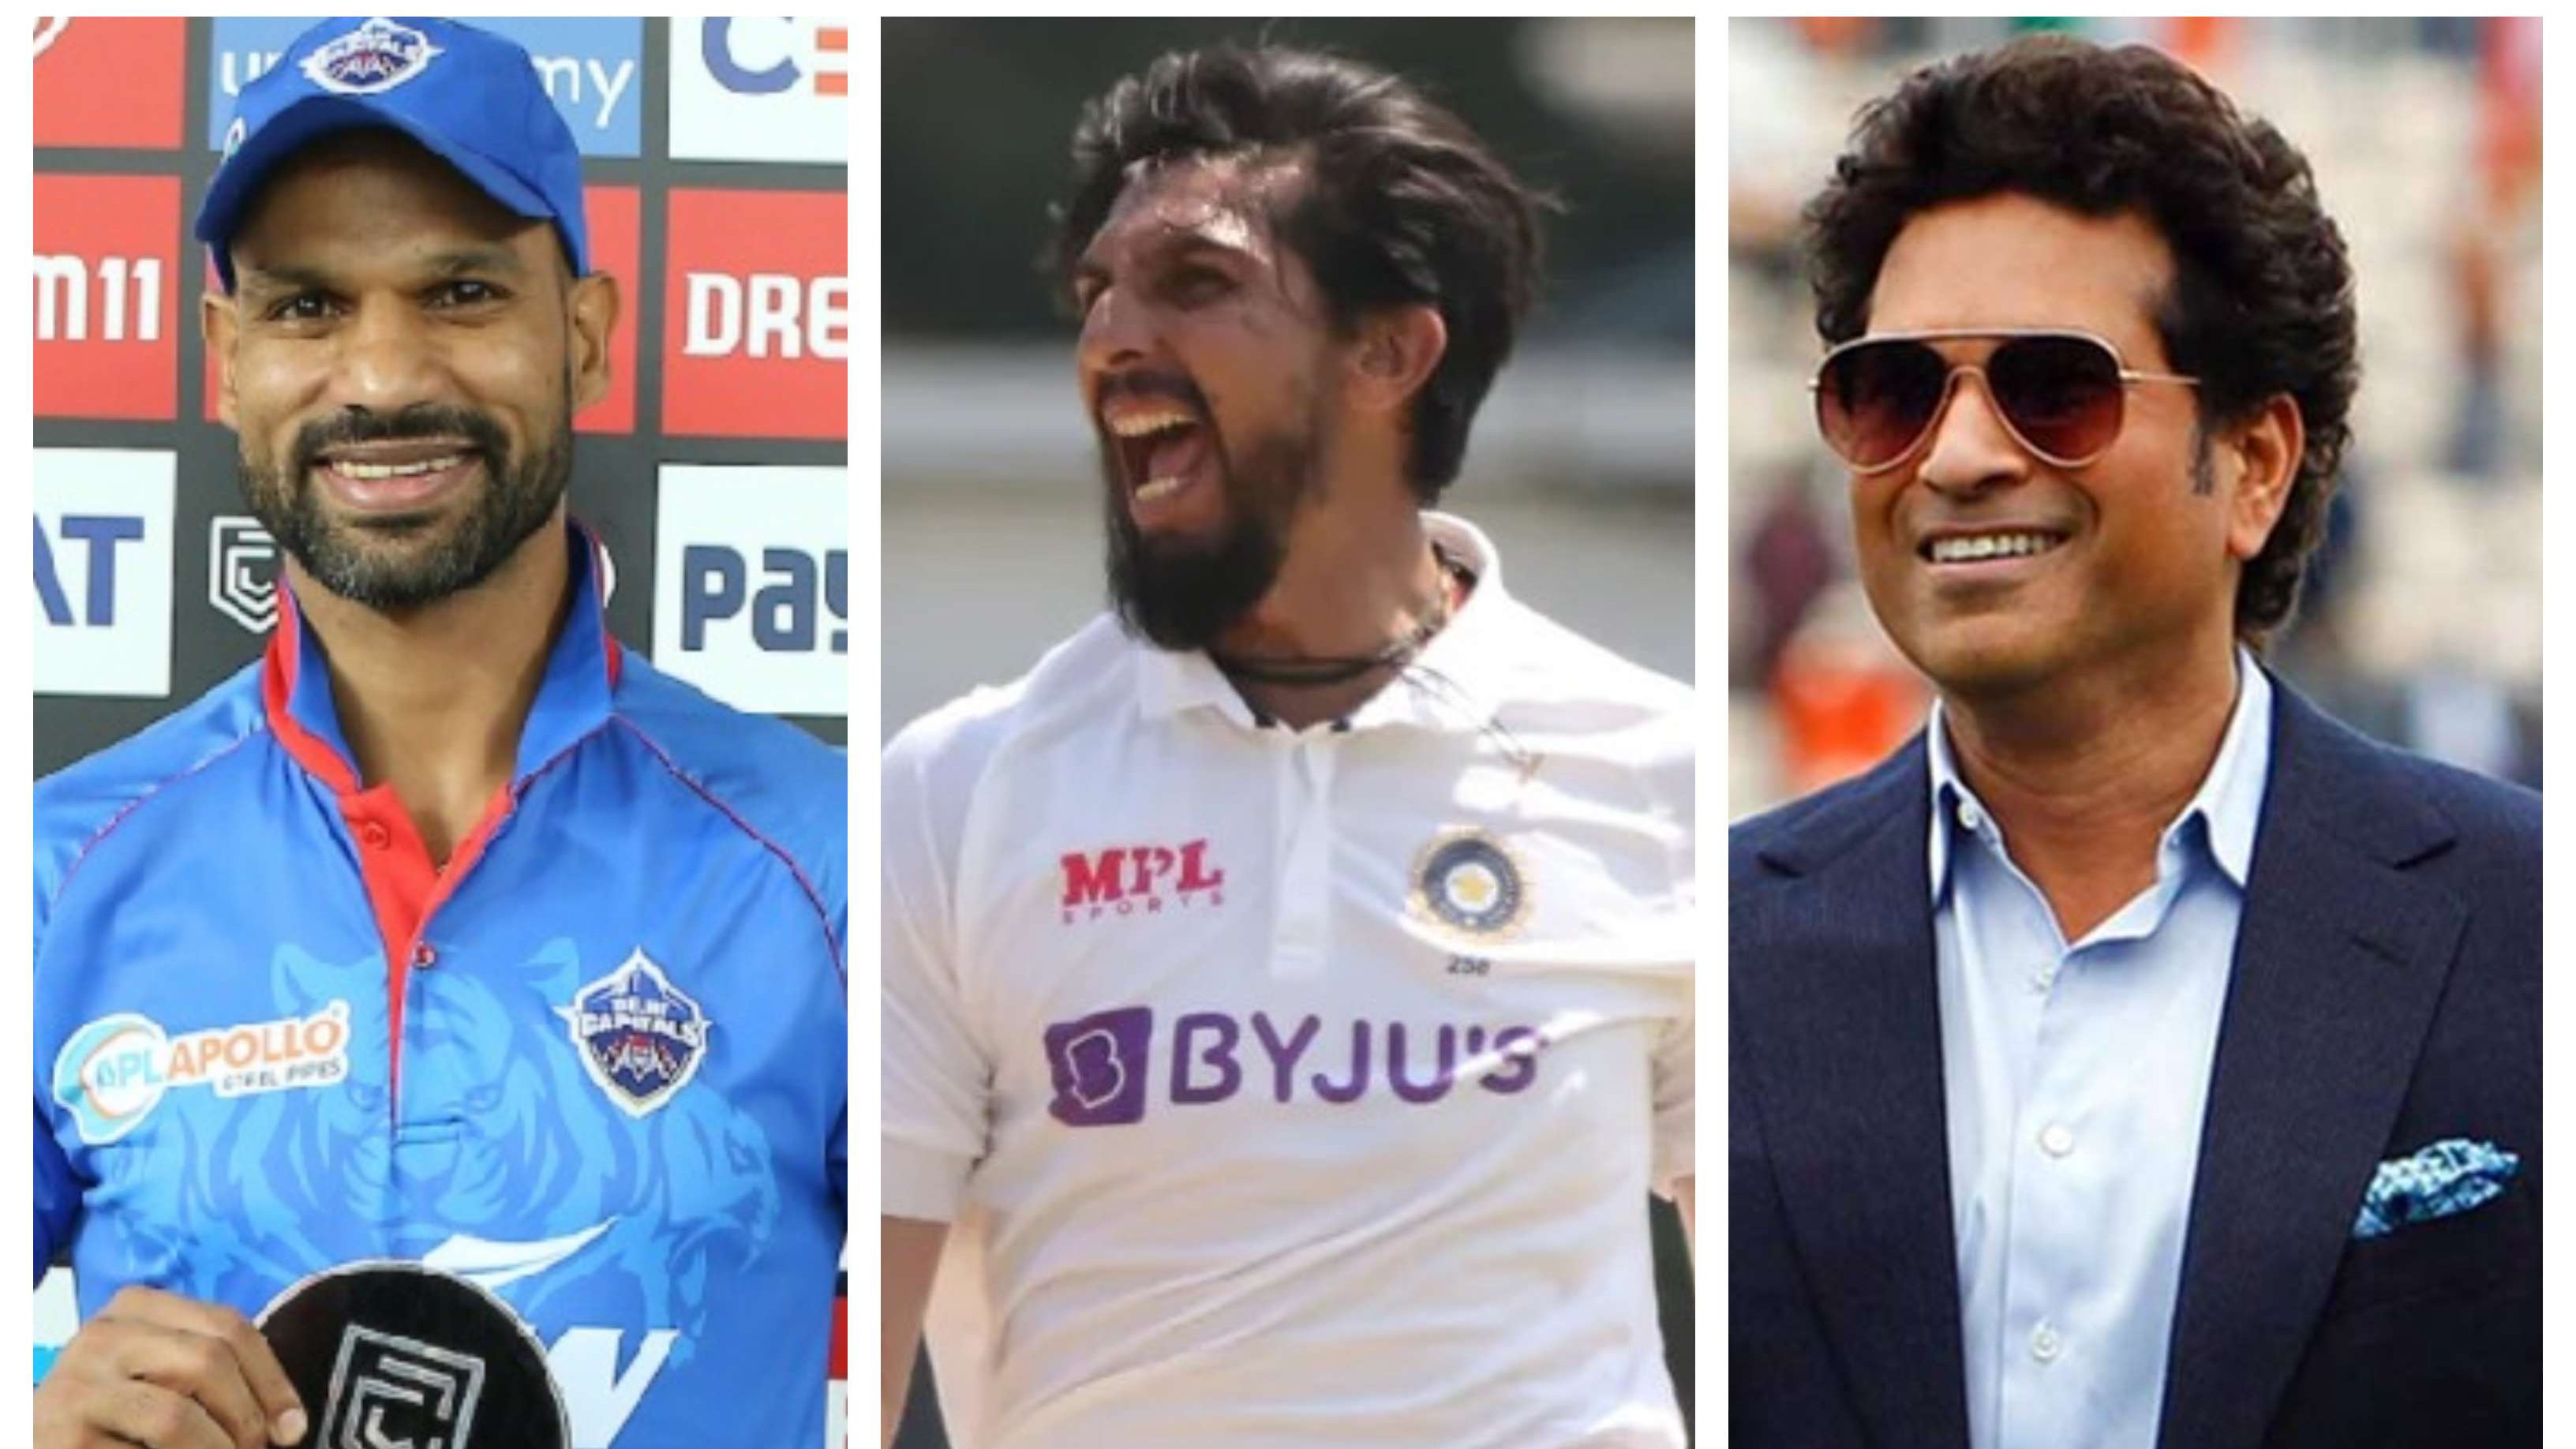 IND v ENG 2021: Indian cricket fraternity lauds Ishant Sharma on completing 100th Test appearance